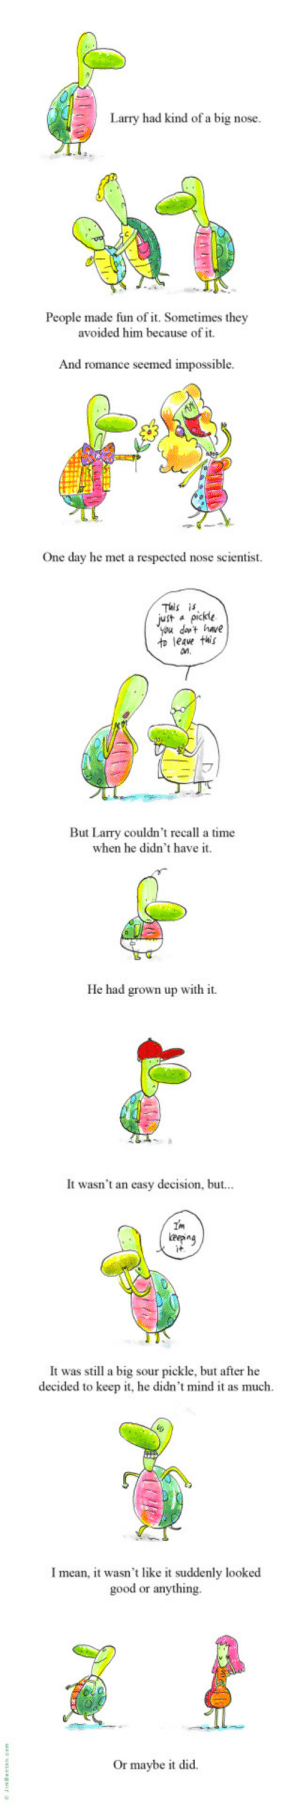 The story of Larry.: Larry had kind of a big nose.  People made fun of it. Sometimes they  avoided him because of it.  And romance seemed impossible  One day he met a respected nose scientist.  This is  Jut apickle  you dat have  to leave this  n.  But Larry couldn't recall a time  when he didn't have it.  He had grown up with it  It wasn't an easy decision, but...  Im  eepng  it  It was still a big sour pickle, but after he  decided to keep it, he didn't mind it as much  Imean, it wasn't like it suddenly looked  good or anything  Or maybe it did The story of Larry.